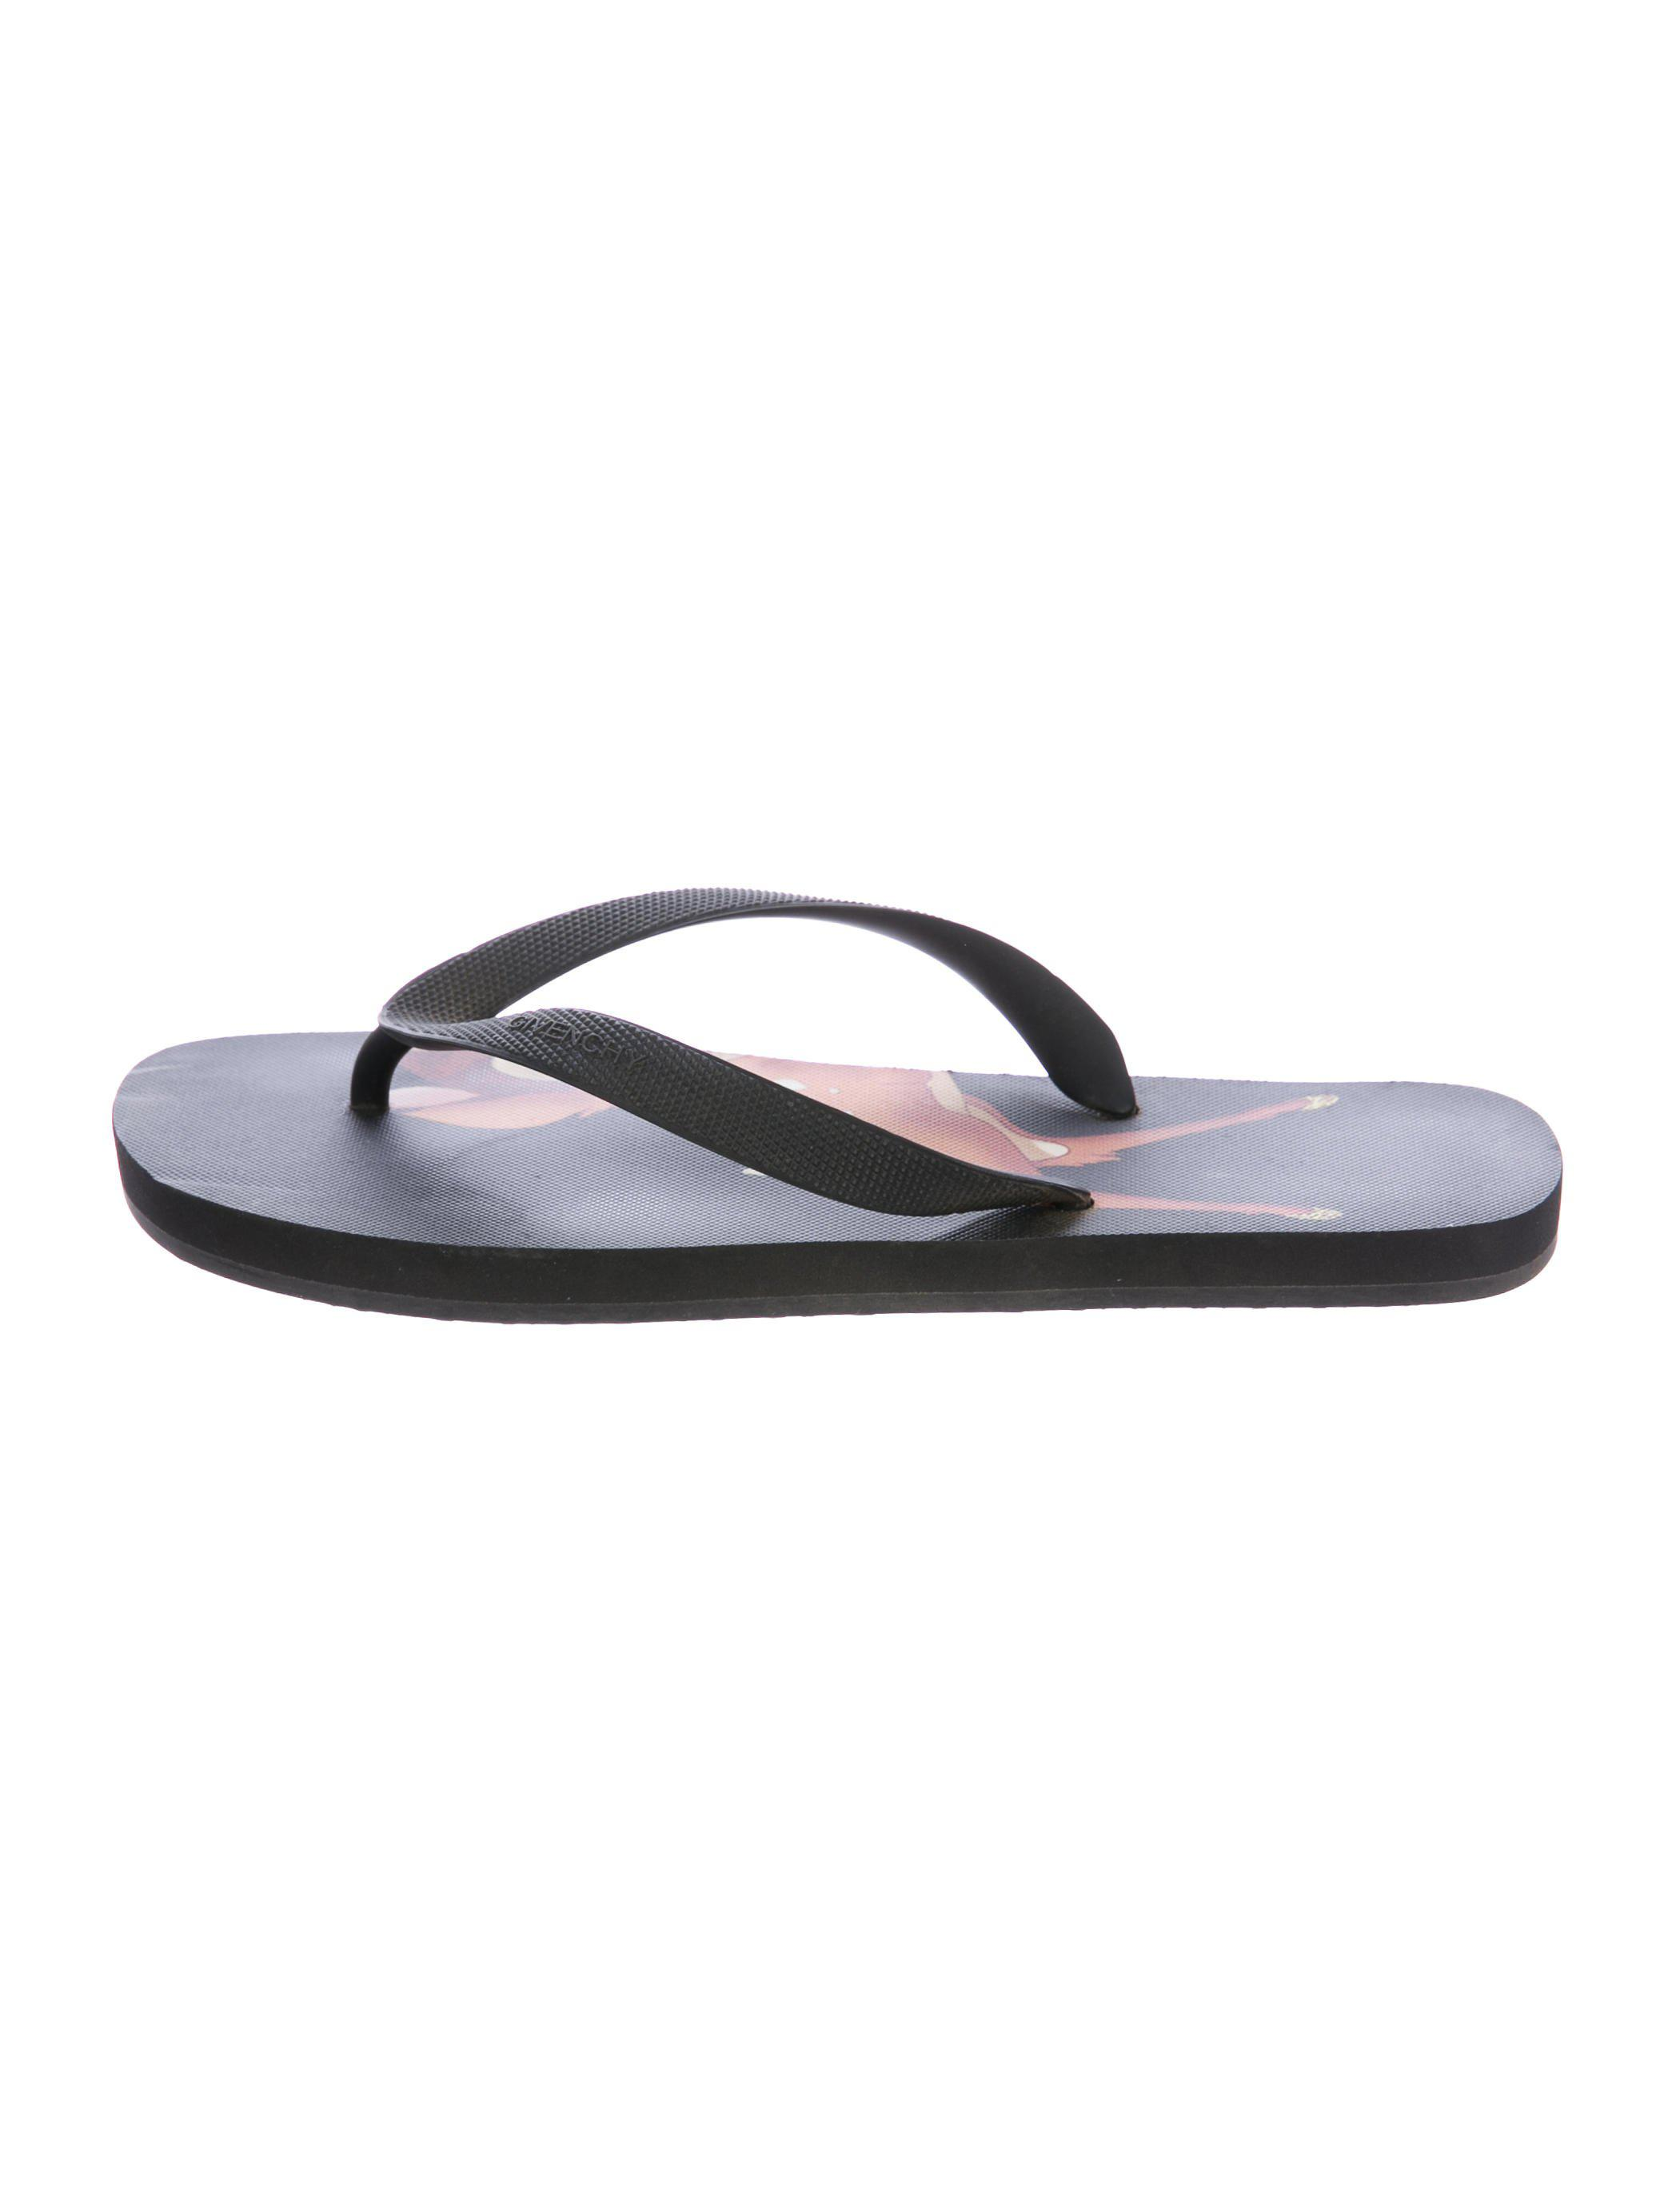 091f109e79459 Lyst - Givenchy Bambi Thong Sandals in Black